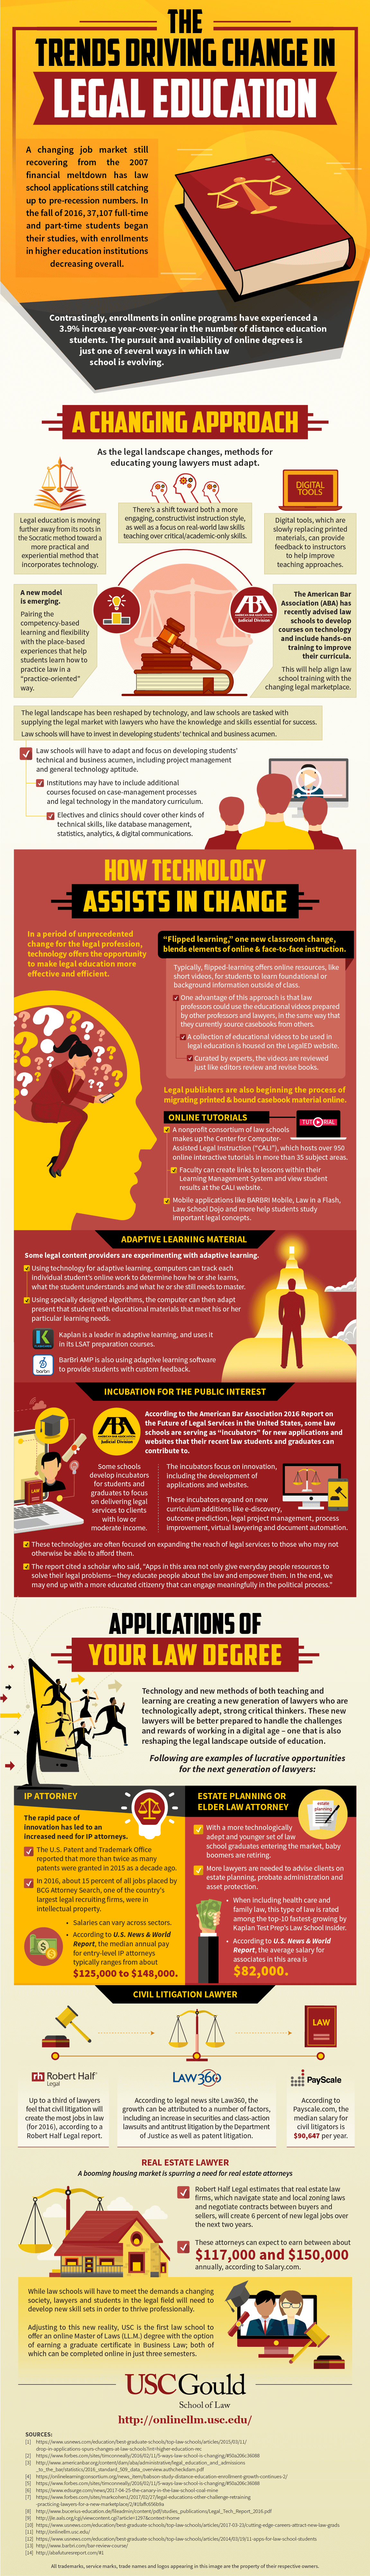 An infographic about top trends in legal education by USC Gould School of Law.